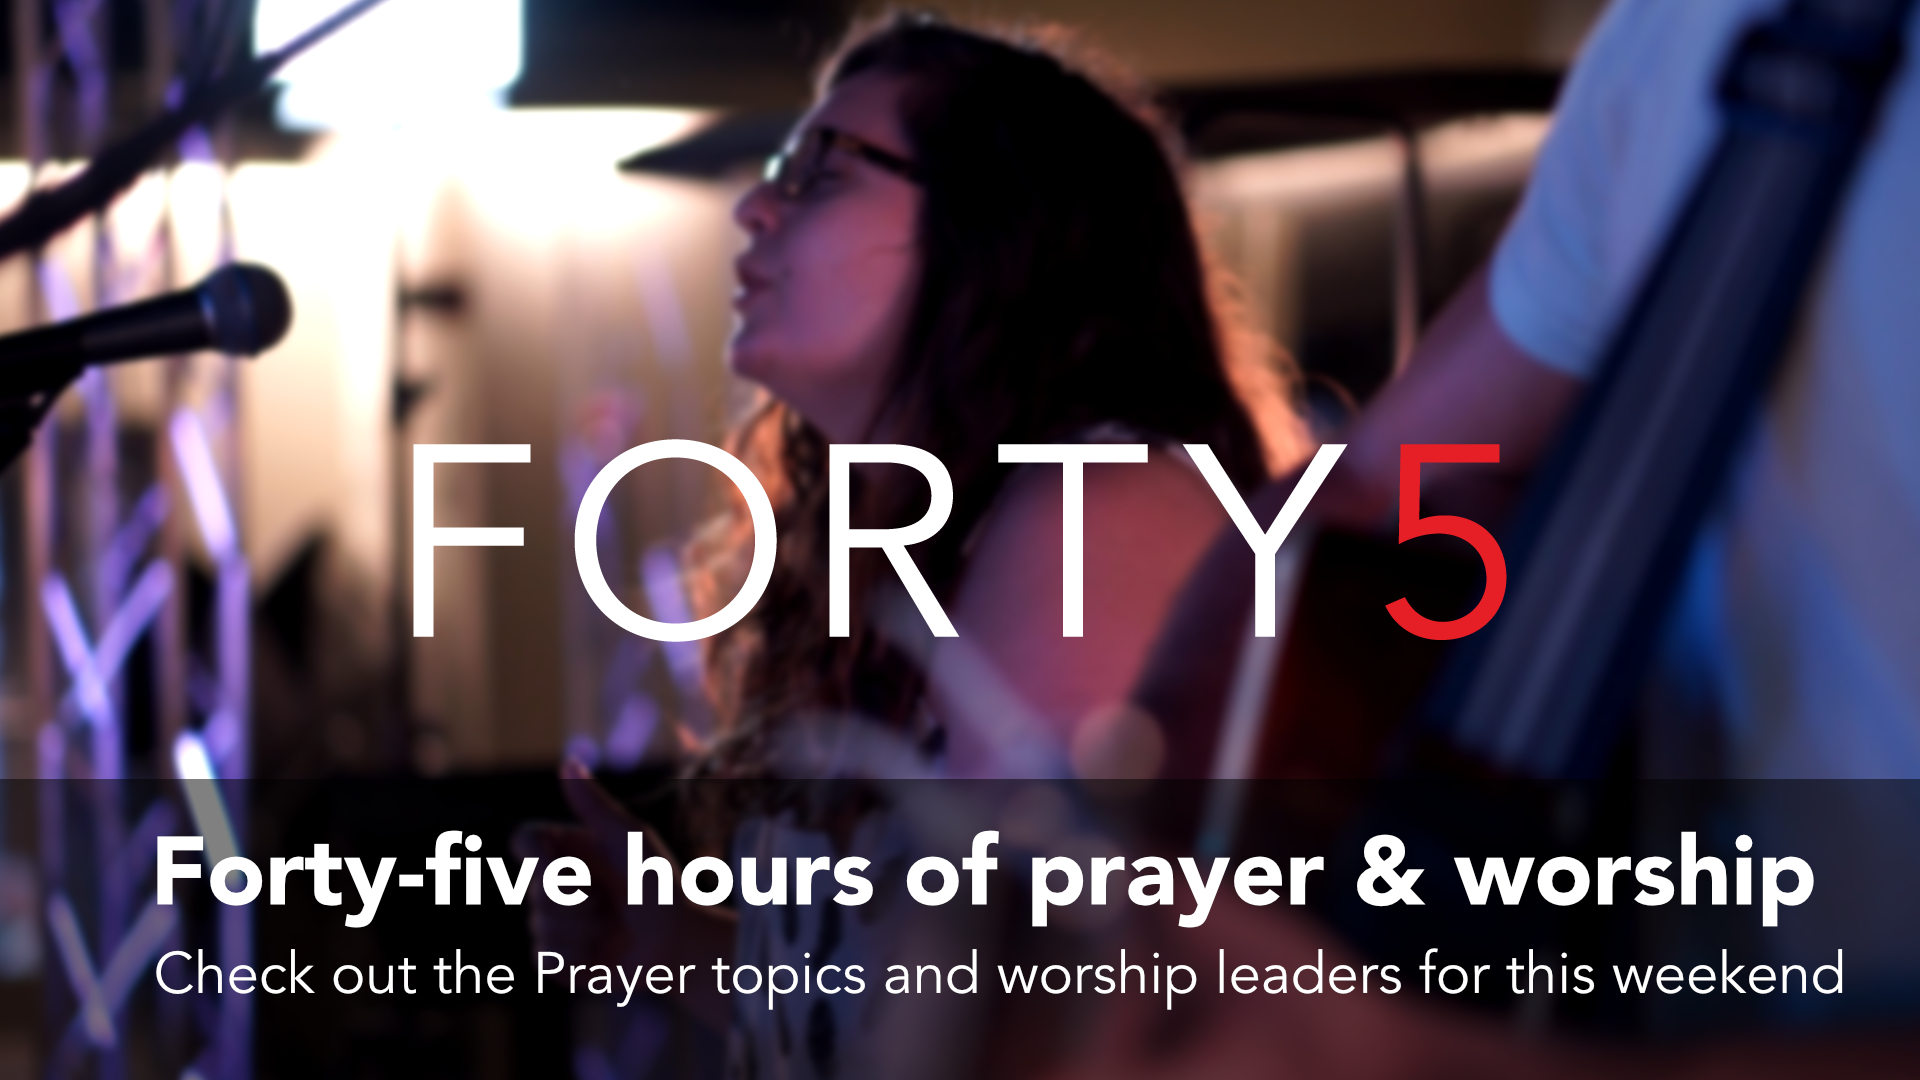 Click to check out the FORTY5.